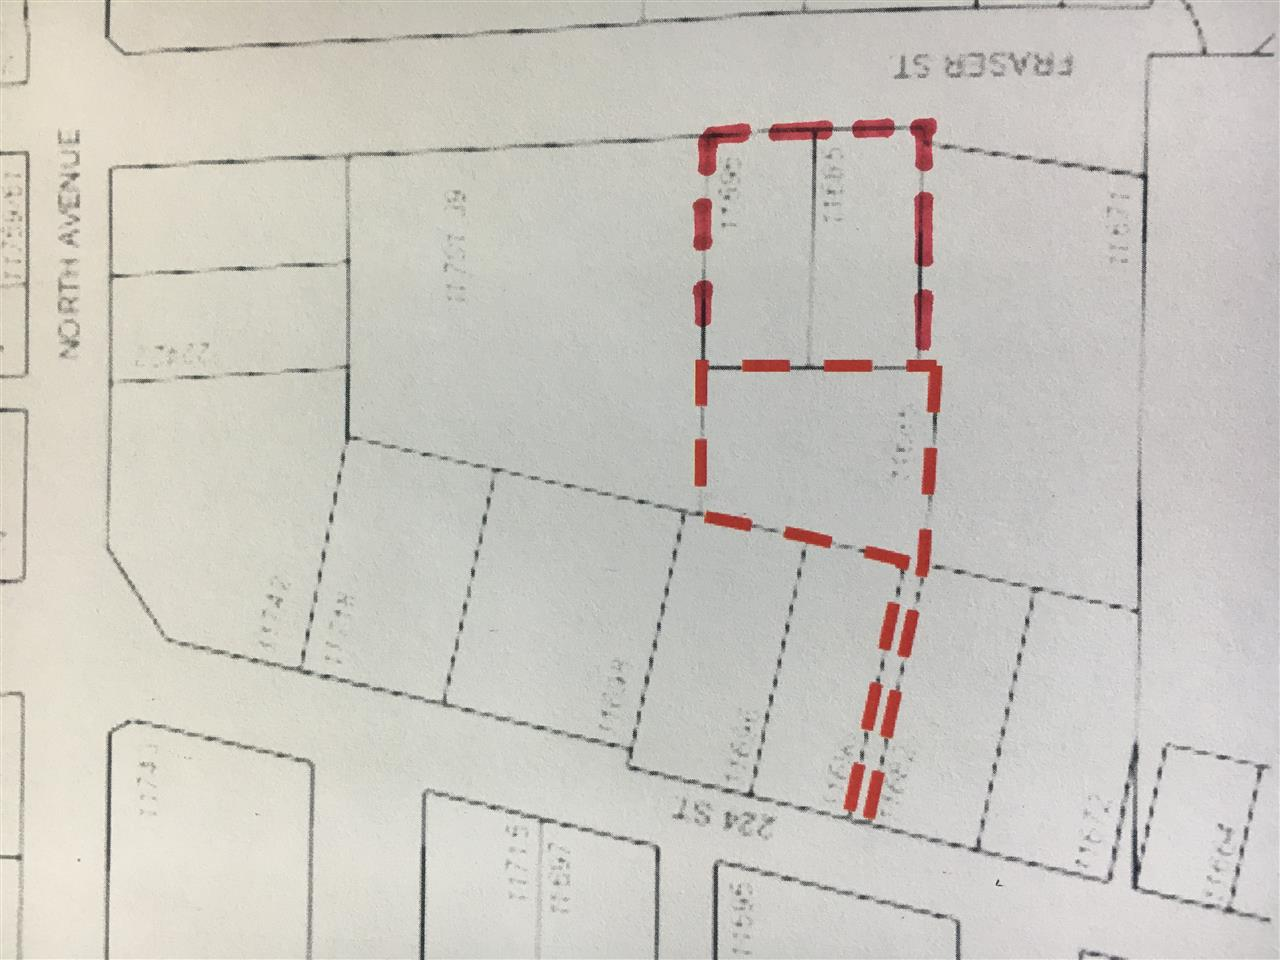 Rezoning and Subdivision potential on this 2/3 Acre site in Downtown Maple Ridge comprised of 3 separate titles (2 properties with small rental homes, 3rd property is vacant).  Current designation in O.C.P. is GOMF (Ground-Oriented Multi Family) but the city may support rezoning to higher density.  Walking distance to Shopping, Parks, Recreation Centre, and Port Haney West Coast Express Station.  Great package providing some rental income while you take it through the rezoning process.  Strata projects in this area are selling out during the construction phase, call Listing Realtor for more info.